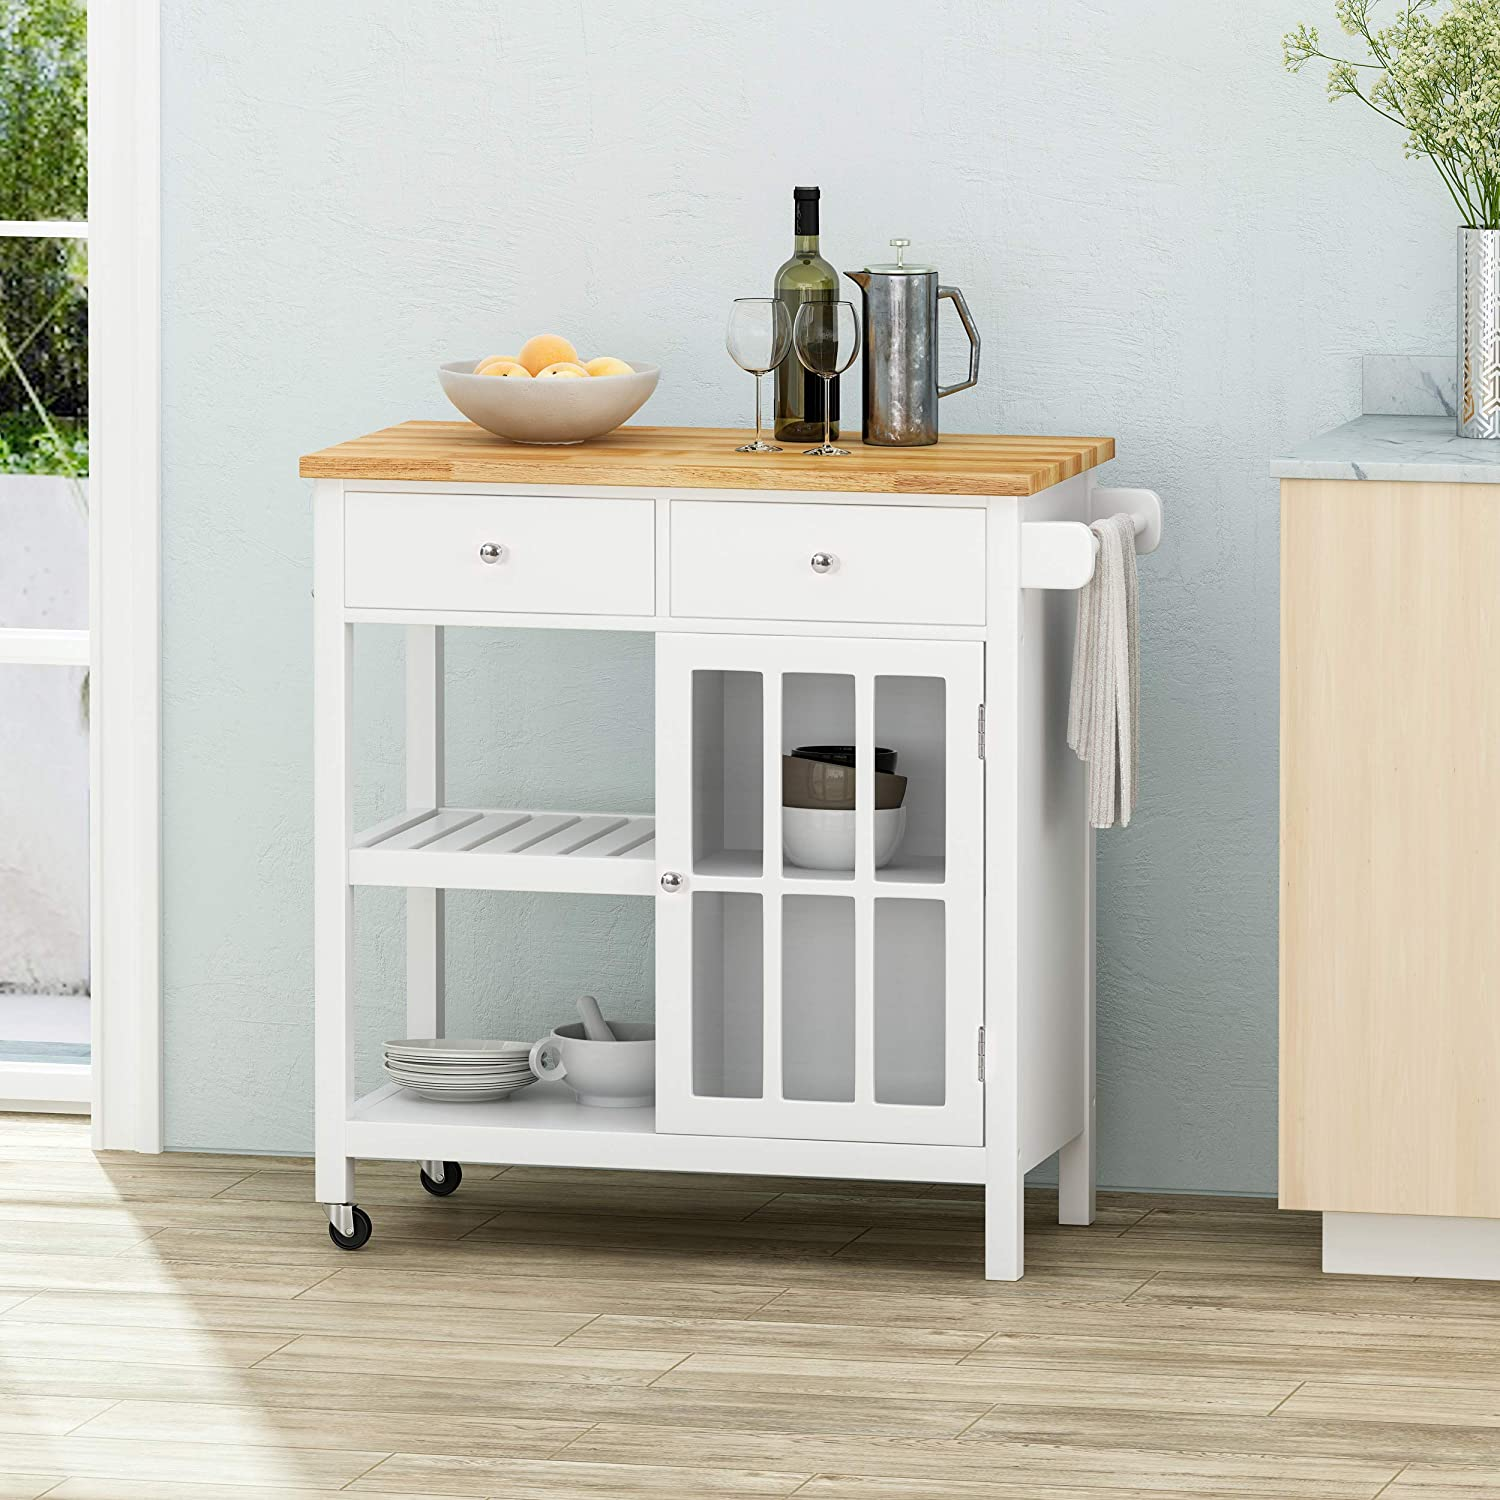 Black and Natural Christopher Knight Home Spark Contemporary Kitchen Cart with Wheels